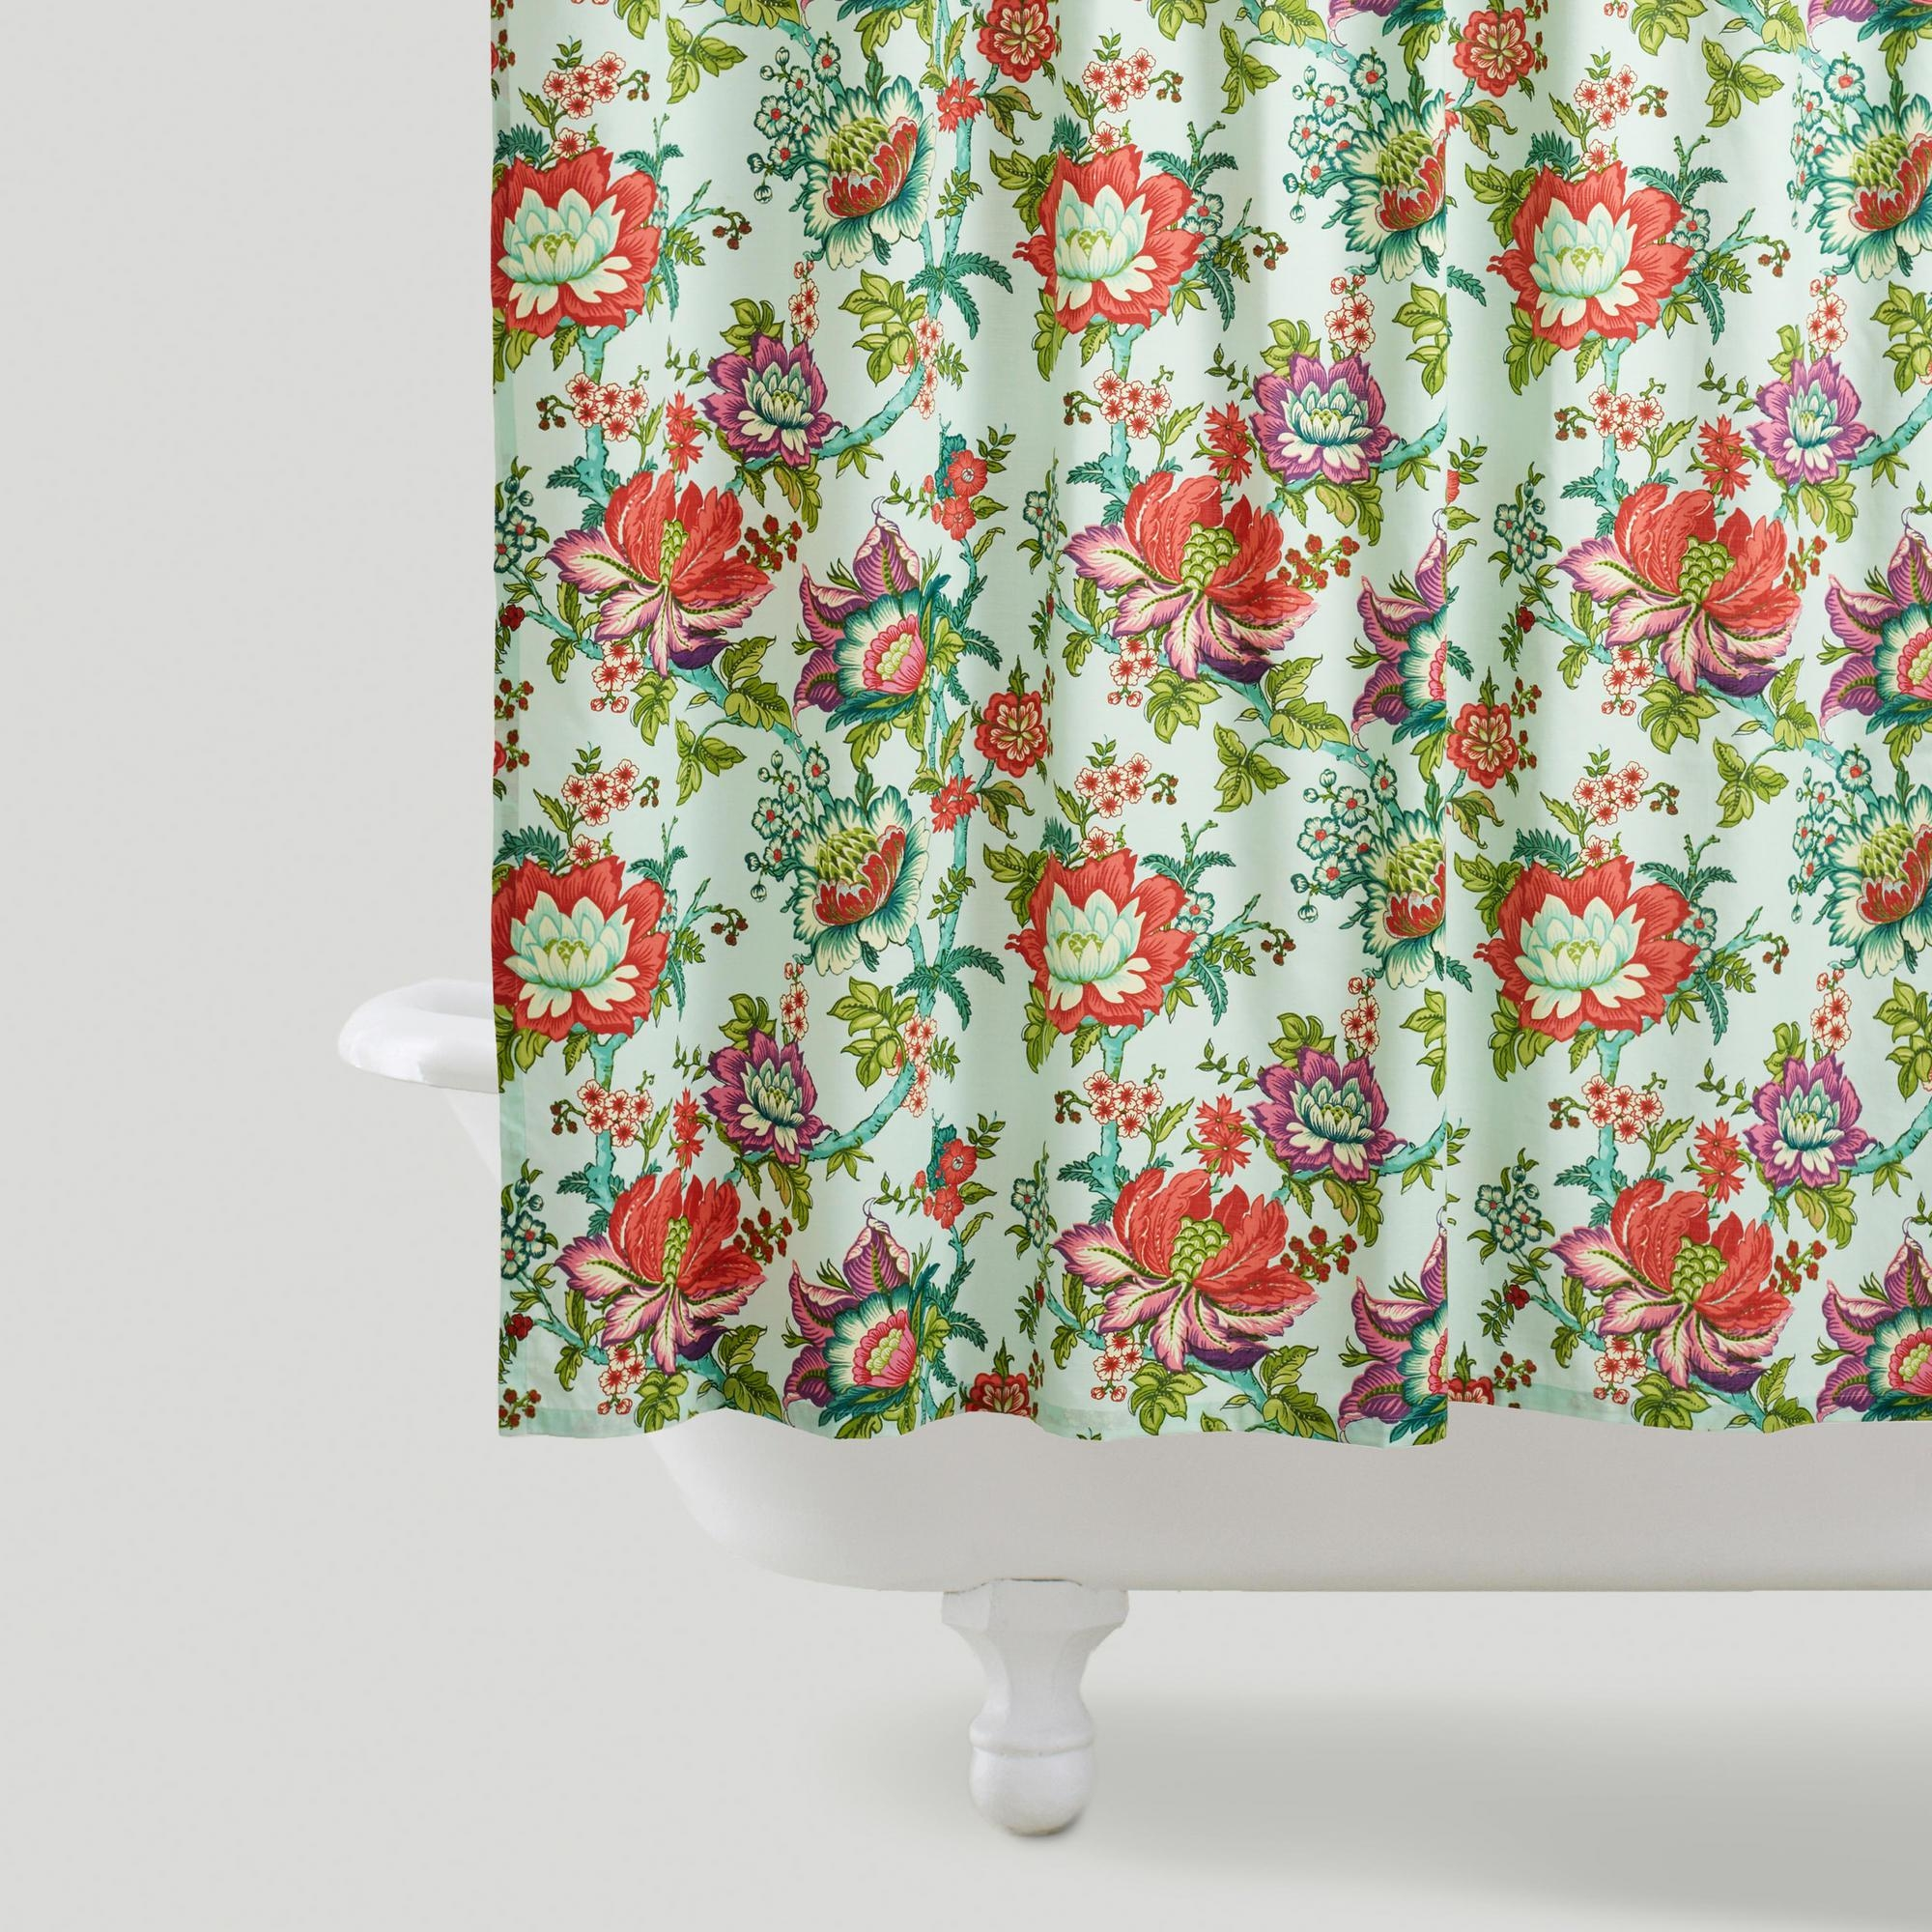 Beautiful Bathroom Decor Ideas with Floral Shower Curtain: Floral Shower Curtain | Mens Shower Curtain | Tapestry Shower Curtain